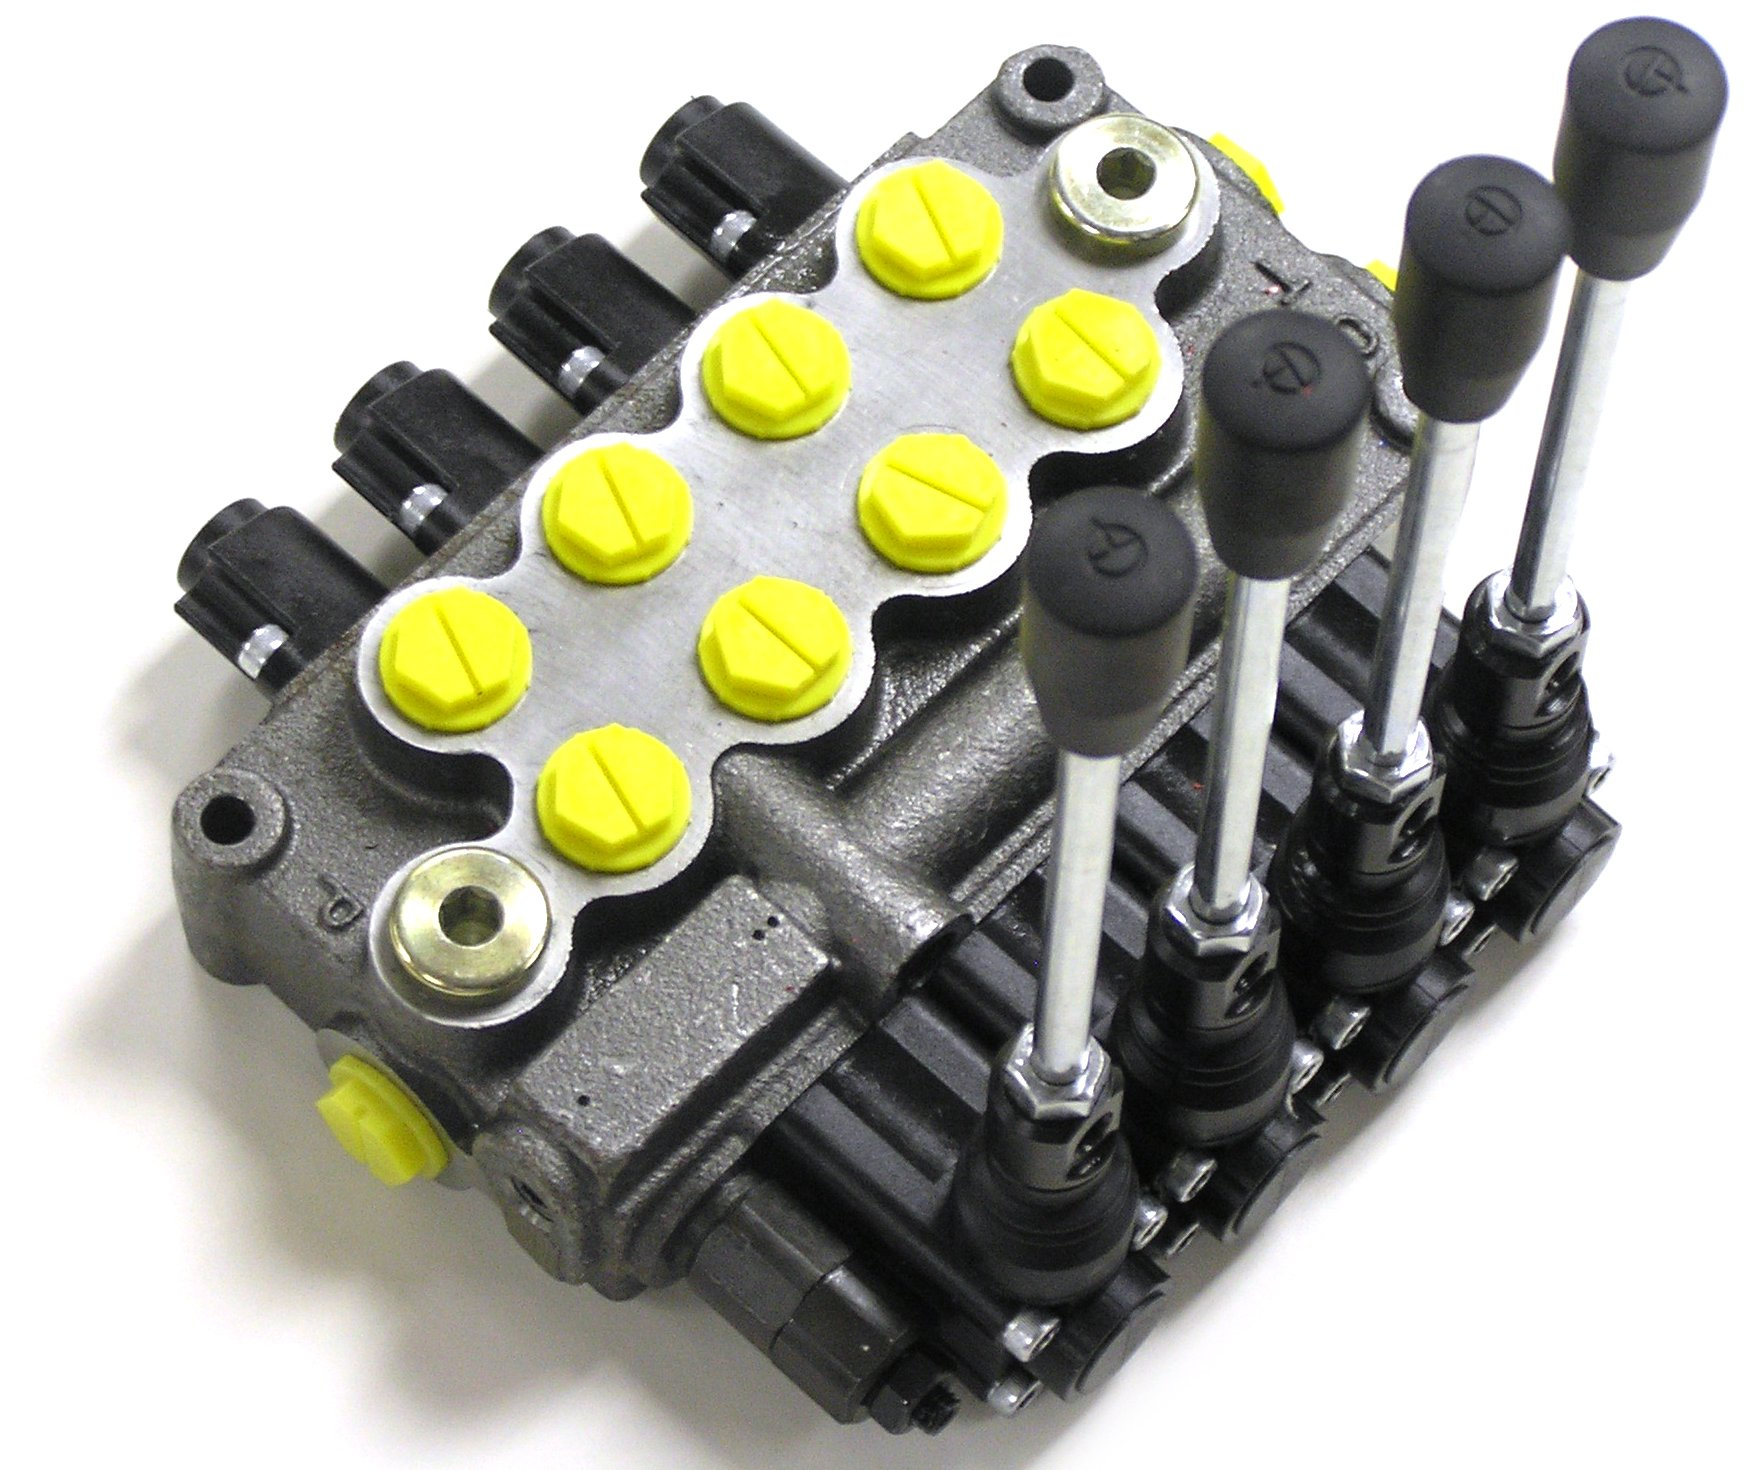 Prince WVS41BBBB5C1 Directional Control Valve, Monoblock, Cast Iron, 4 Spool, 4 Ways, 3 Positions, Single Acting Cylinder Spool, Spring Center, Lever Handle, 4000 psi, 14 gpm, #8 SAE